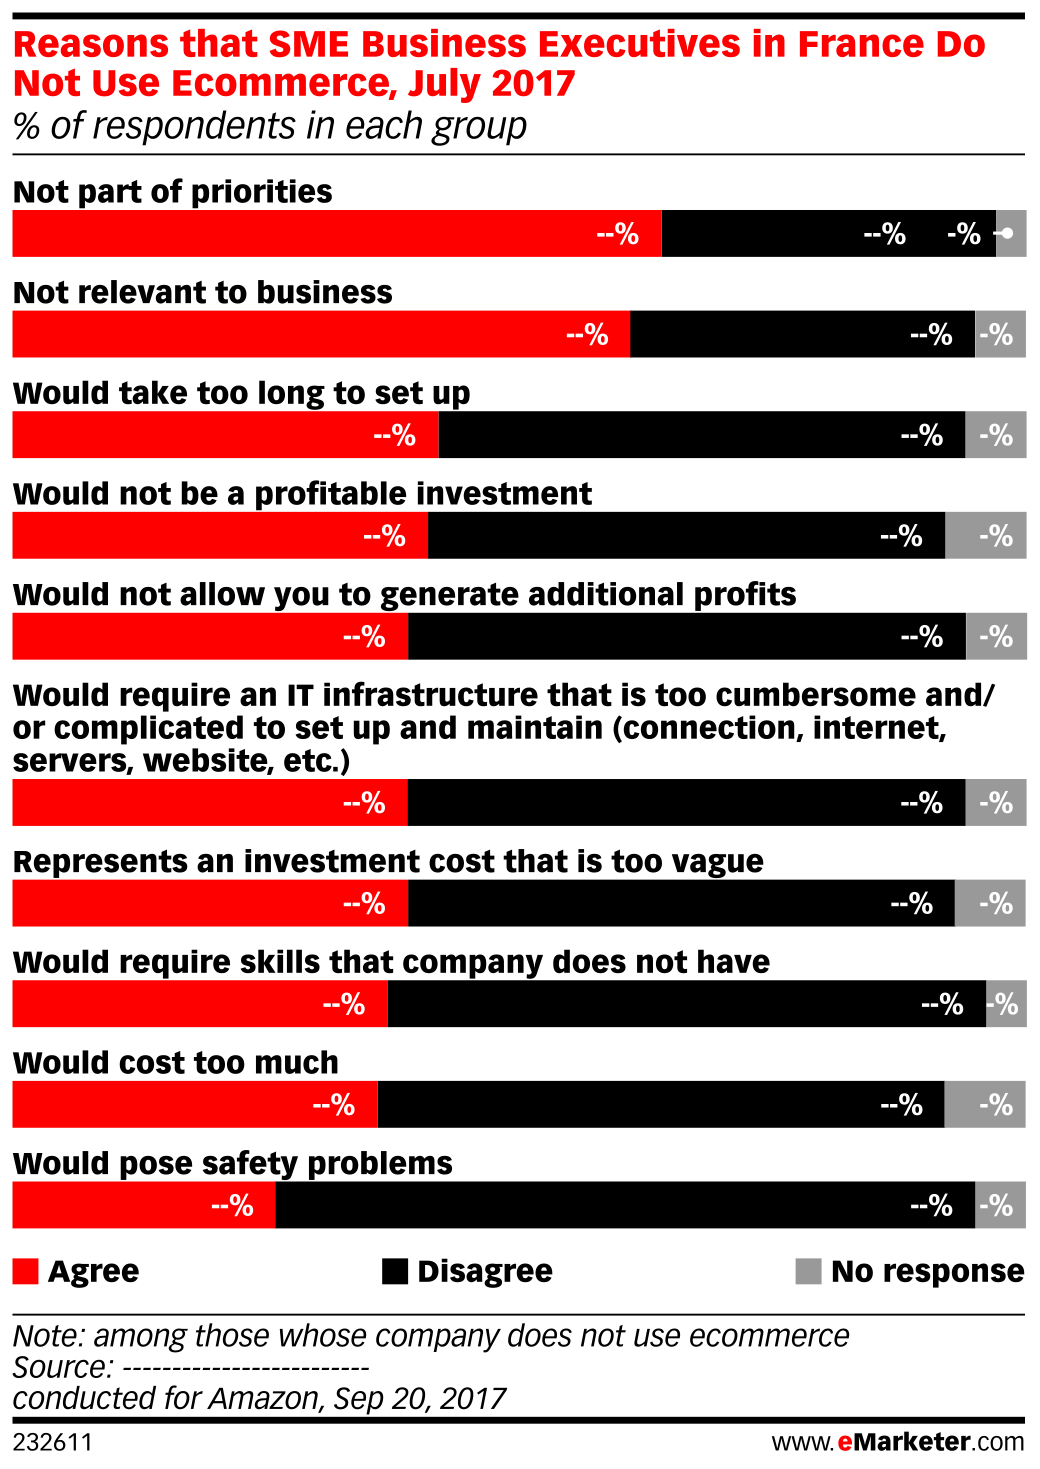 Reasons that SME Business Executives in France Do Not Use Ecommerce, July 2017 (% of respondents in each group)